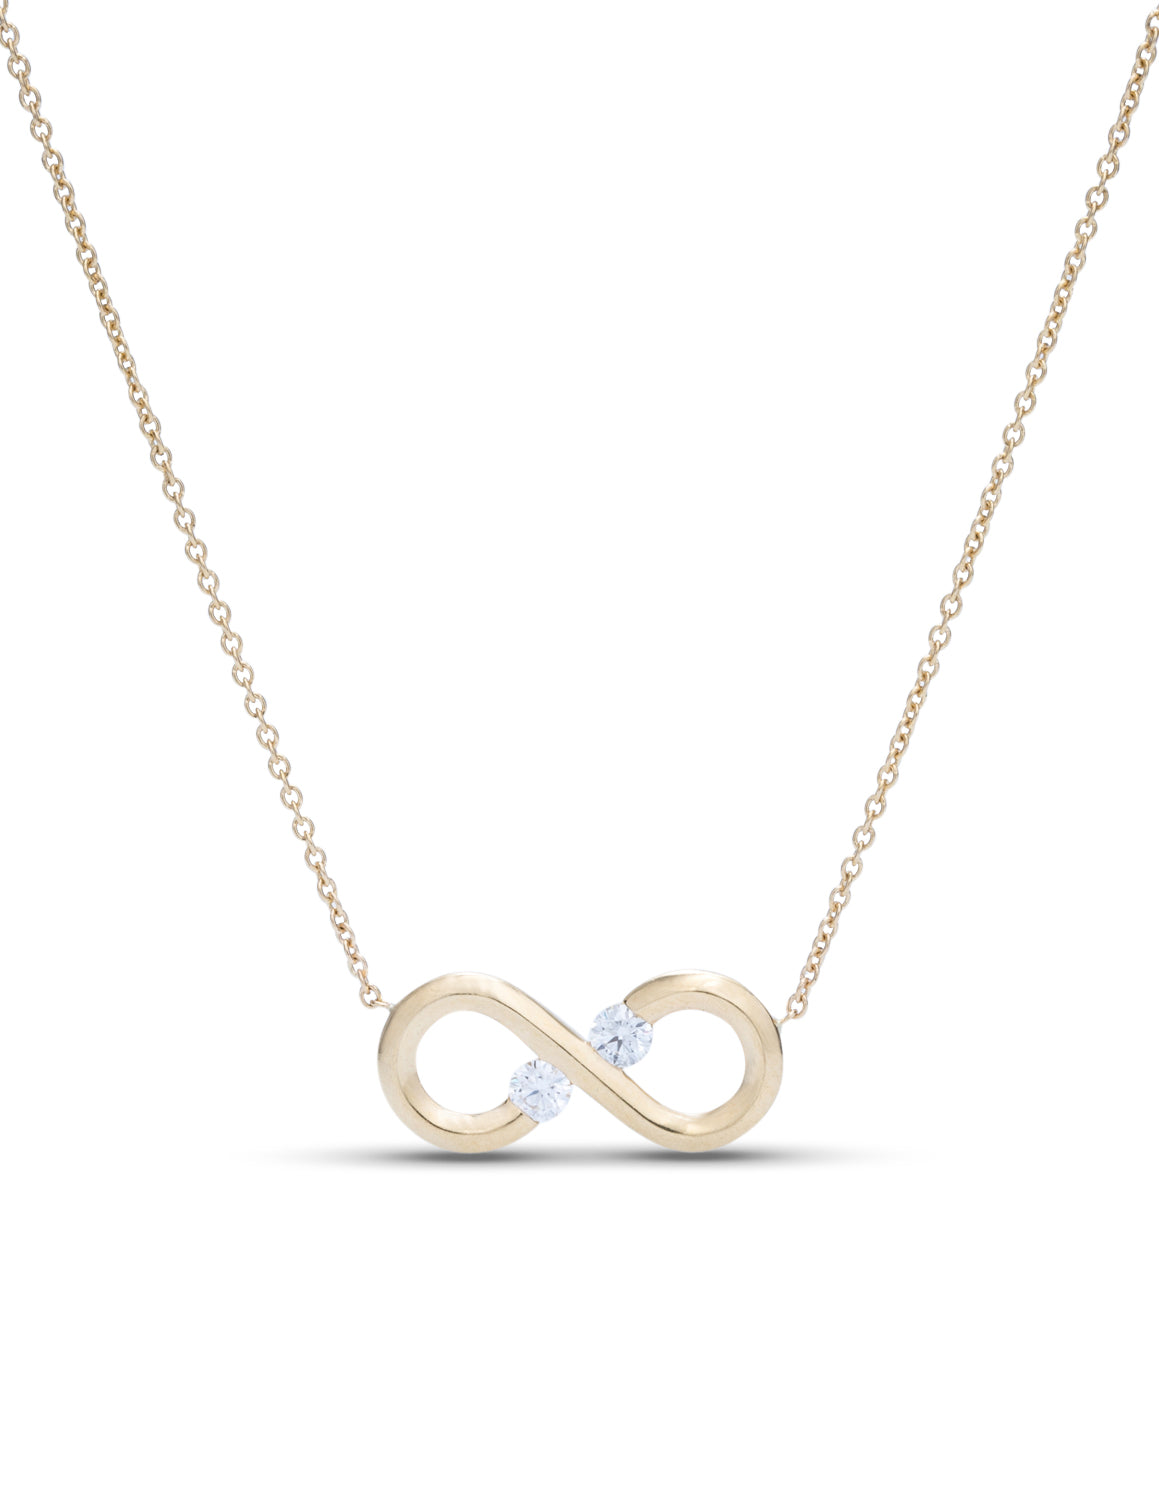 Yellow Gold Infinity Necklace - Charles Koll Jewellers